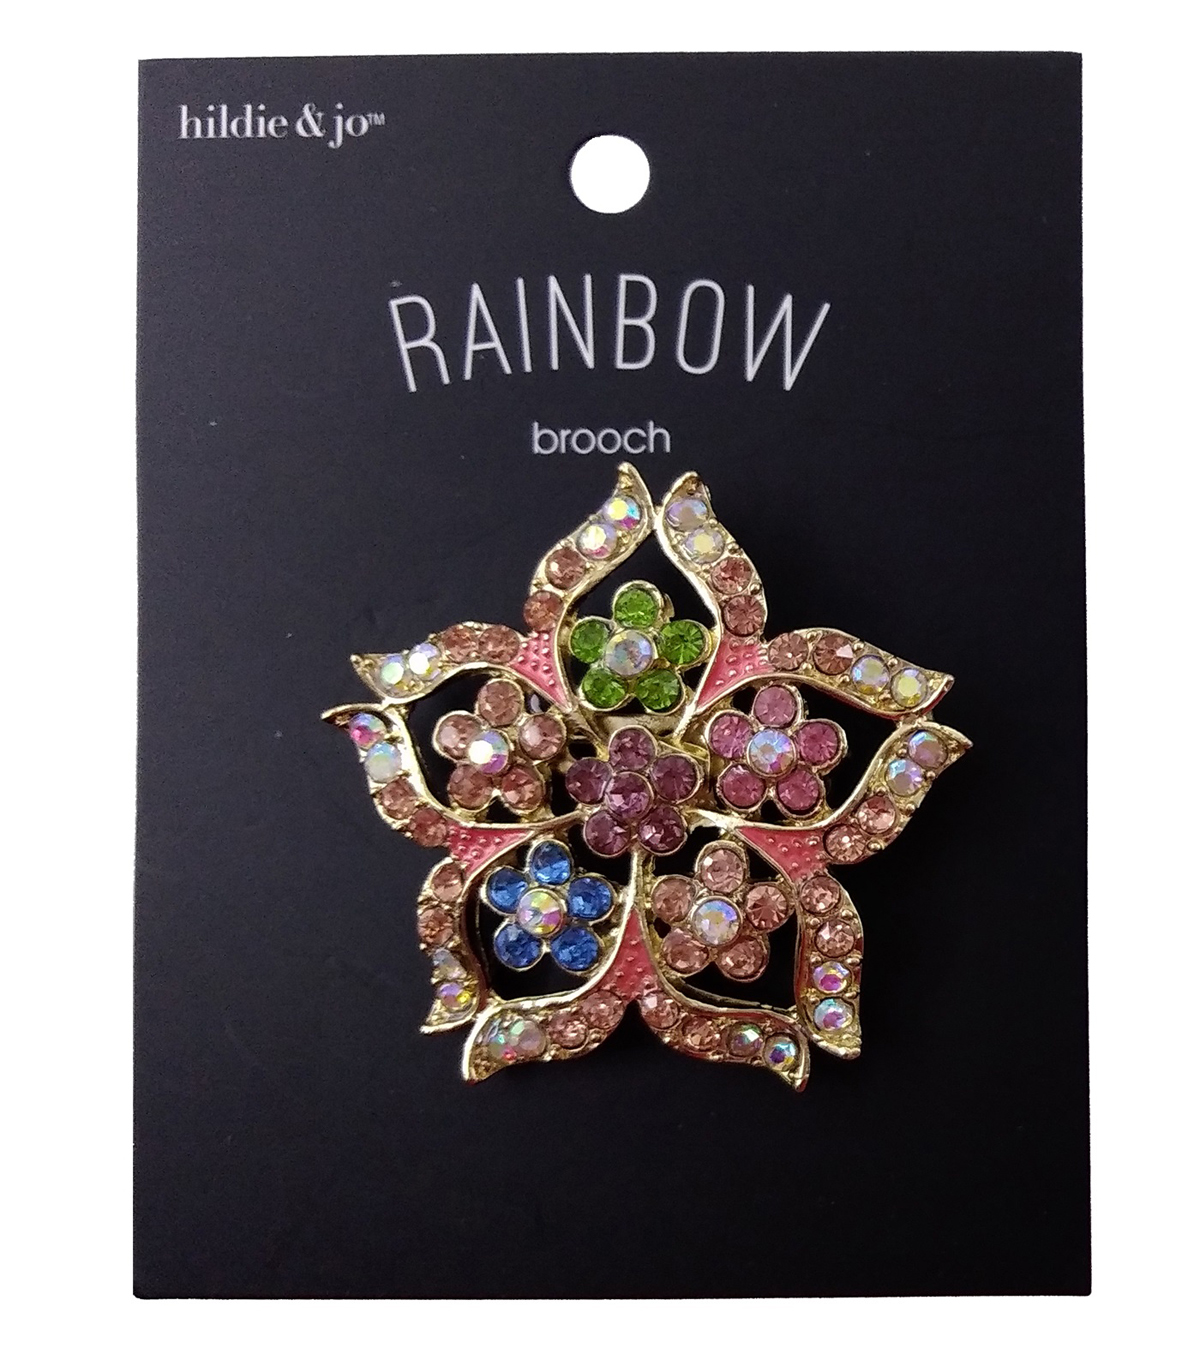 hildie & jo Rainbow Brooch-Flower Cut Out Multi Stone Gold